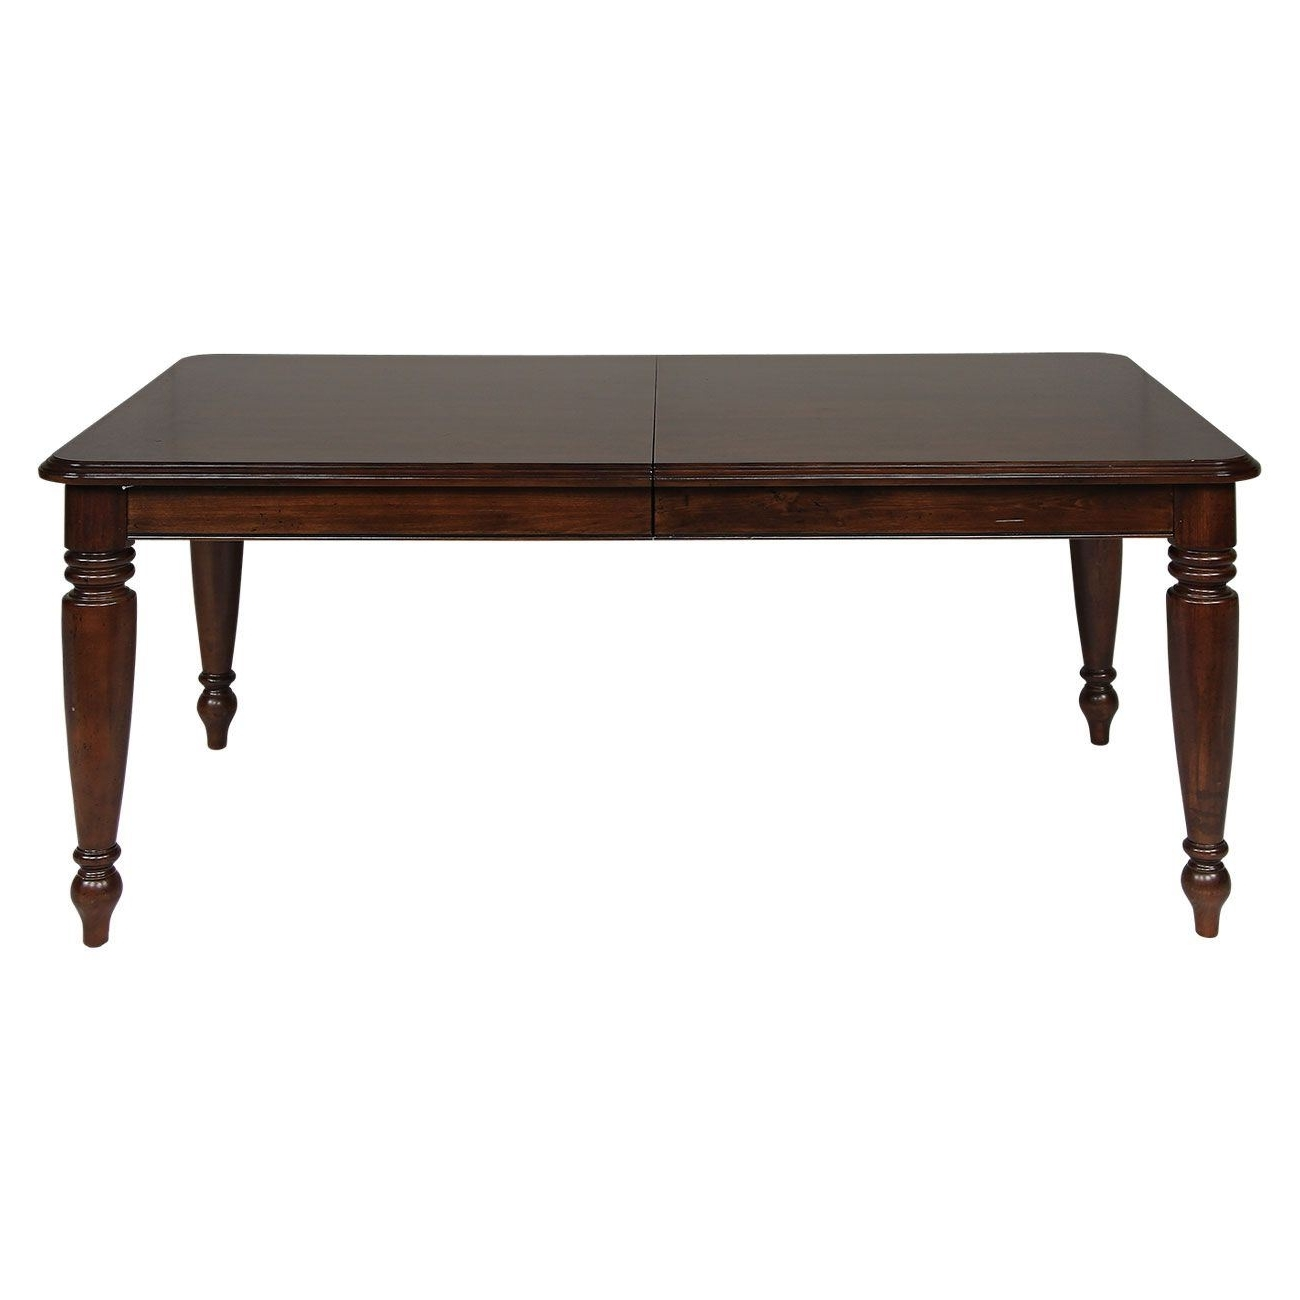 Cotswold Rectangular Dining Table With Most Popular Cotswold Dining Tables (View 11 of 25)